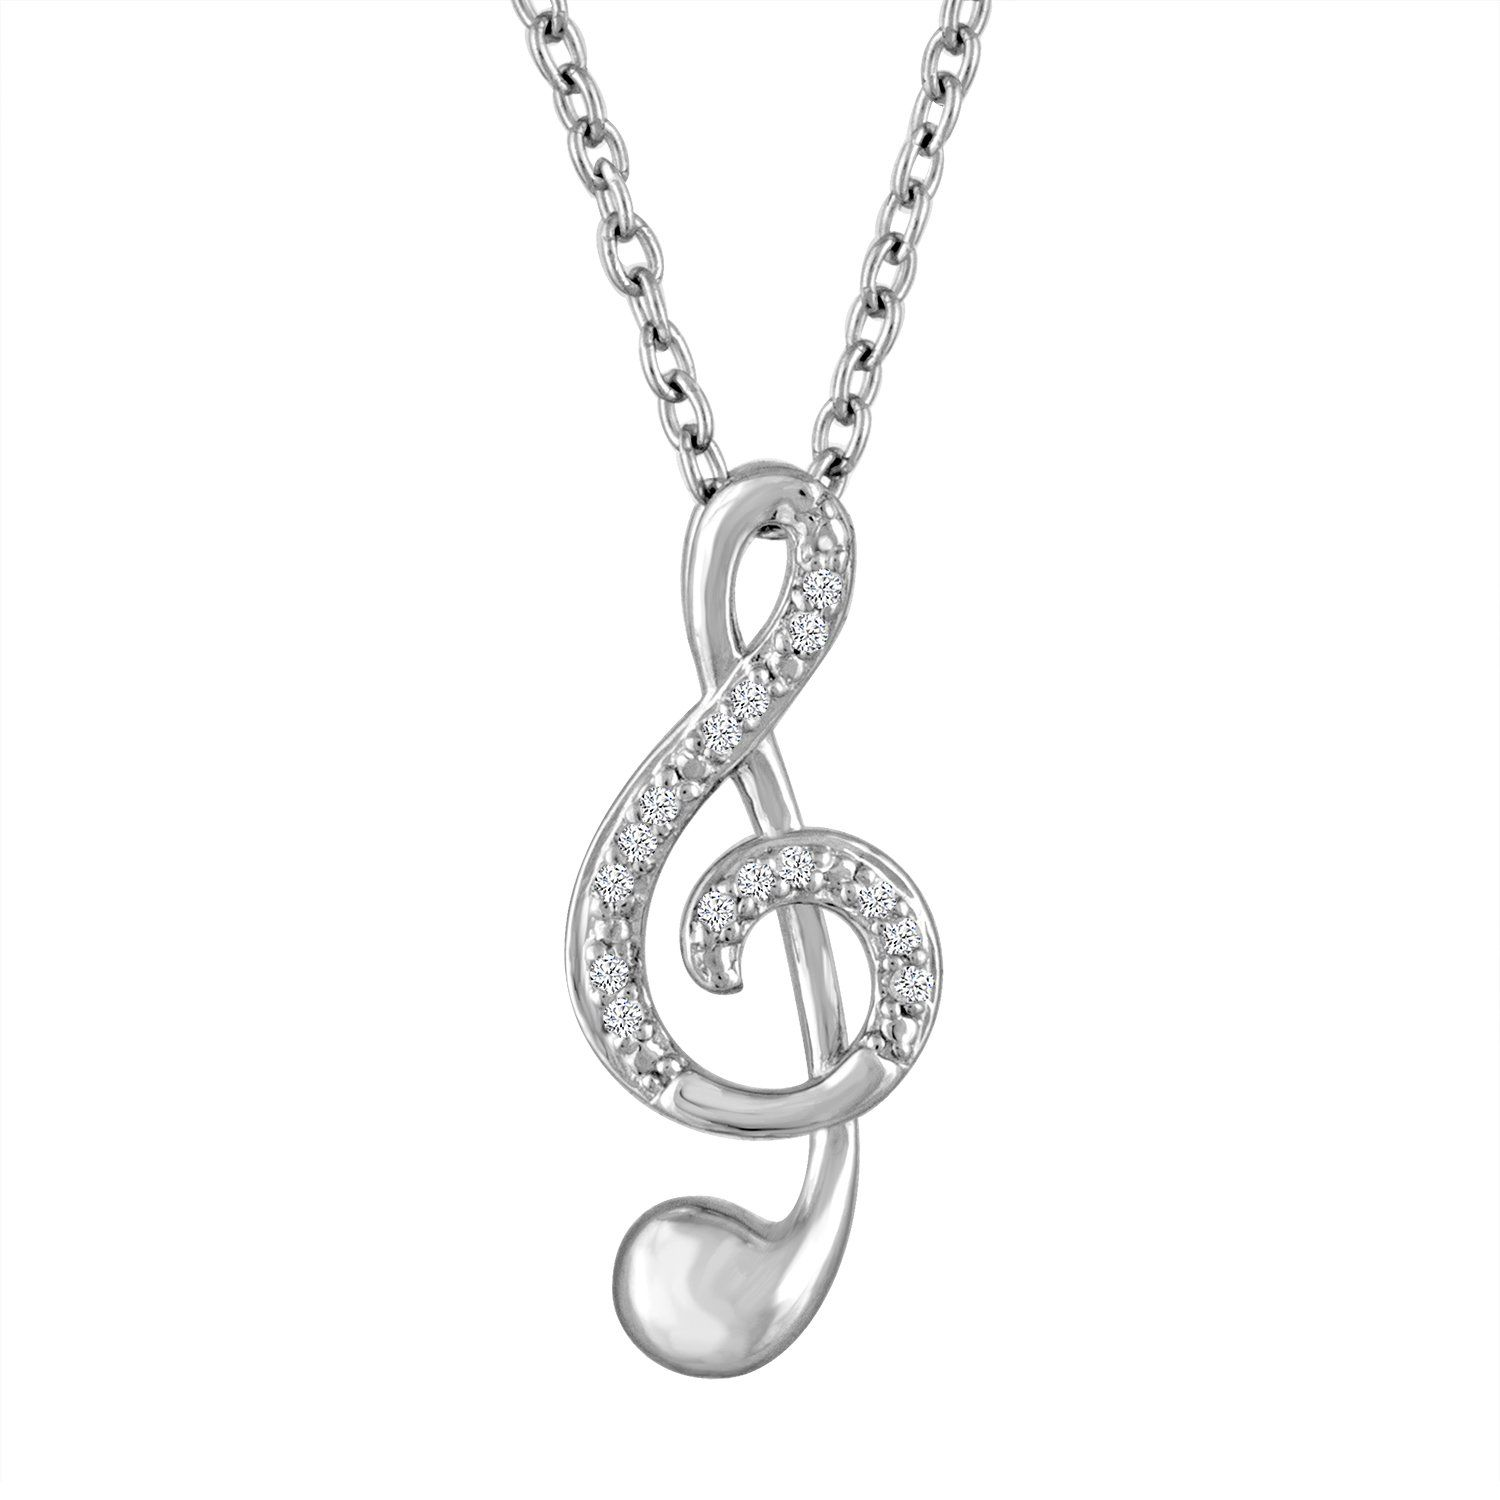 cord chain hot surround necklace blackheart layer with note treble music yourself pin clef pendant